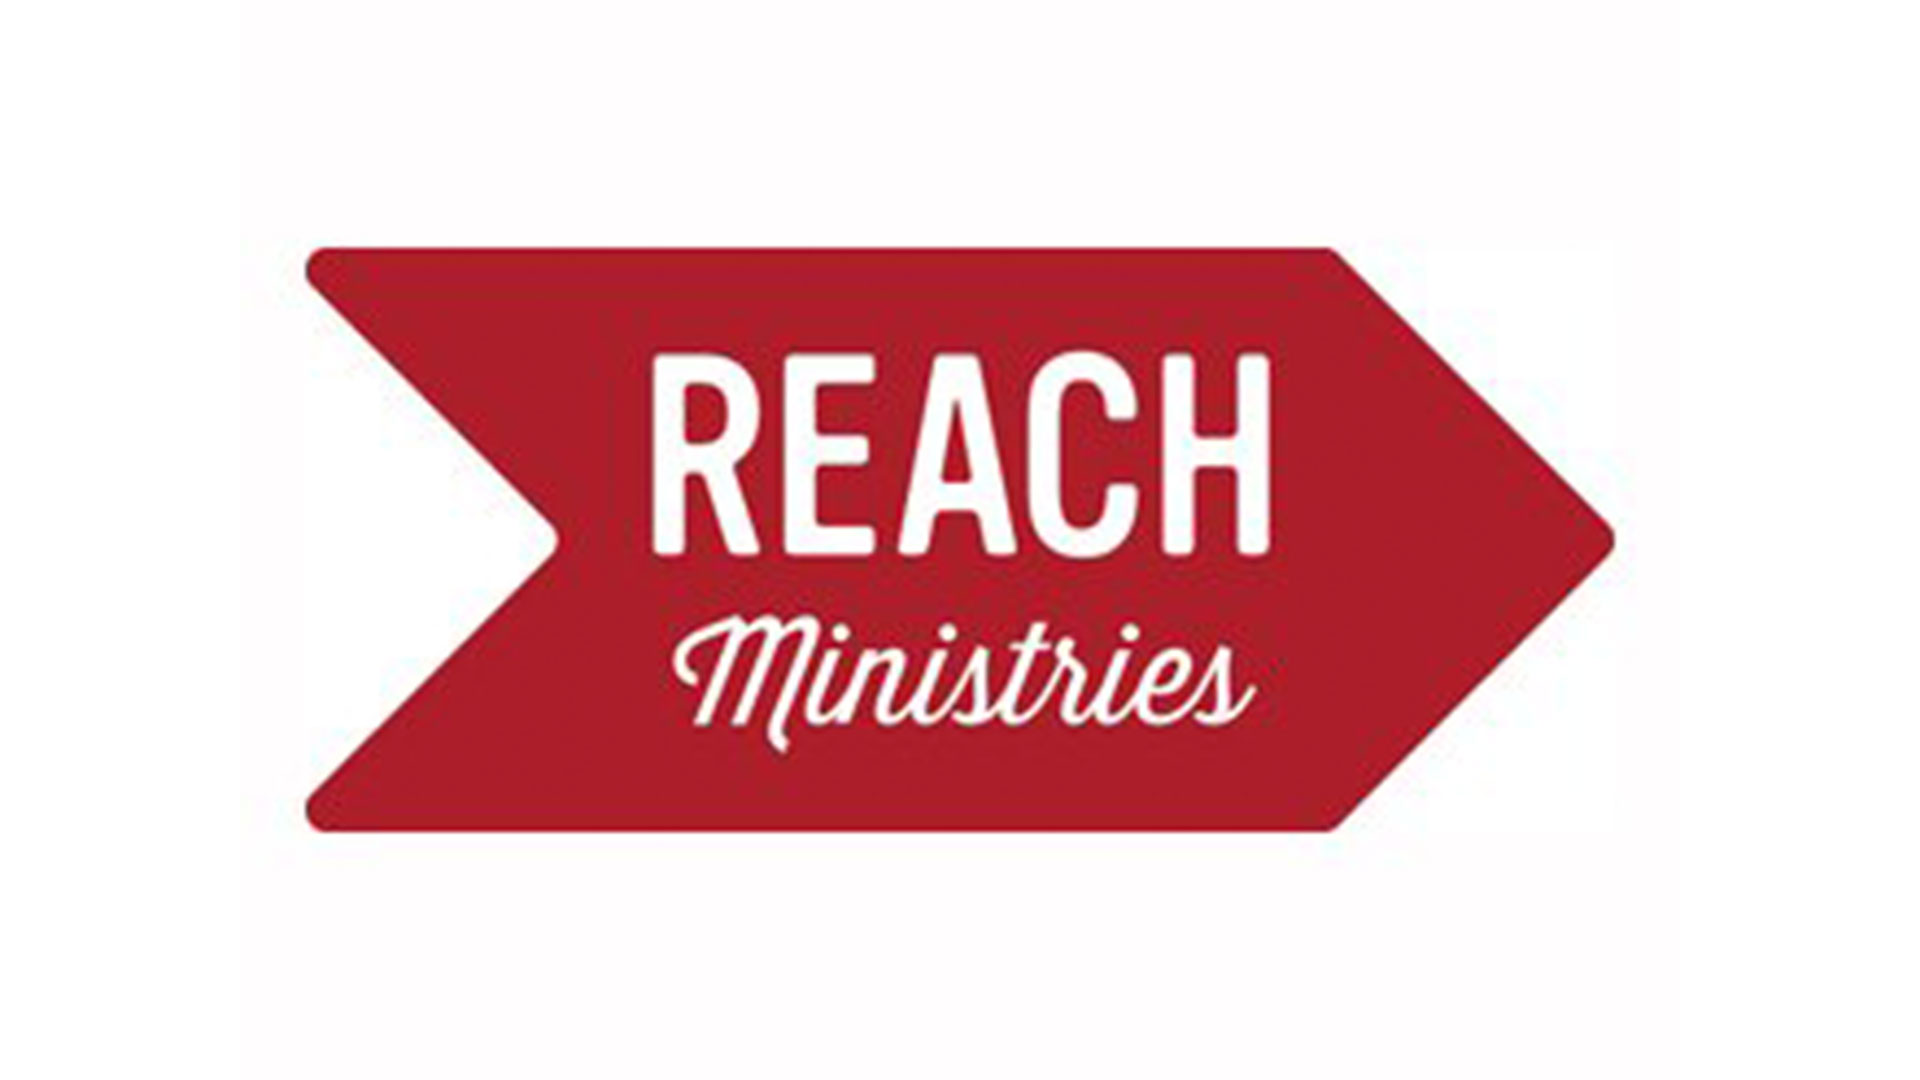 We partner with Reach Ministries. Read on to learn more.